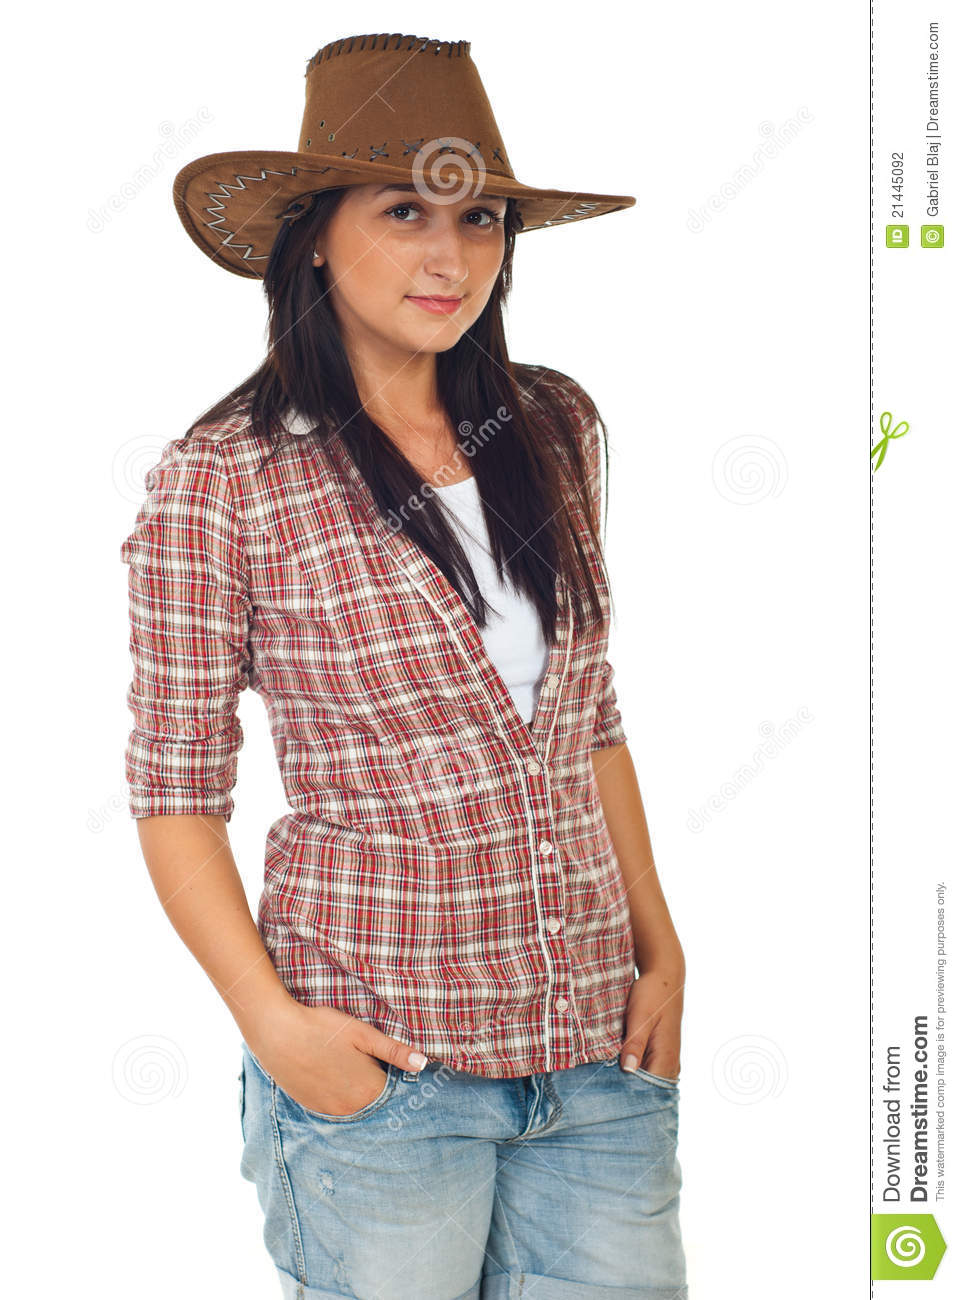 Modern cowboy outfit for women - photo#11